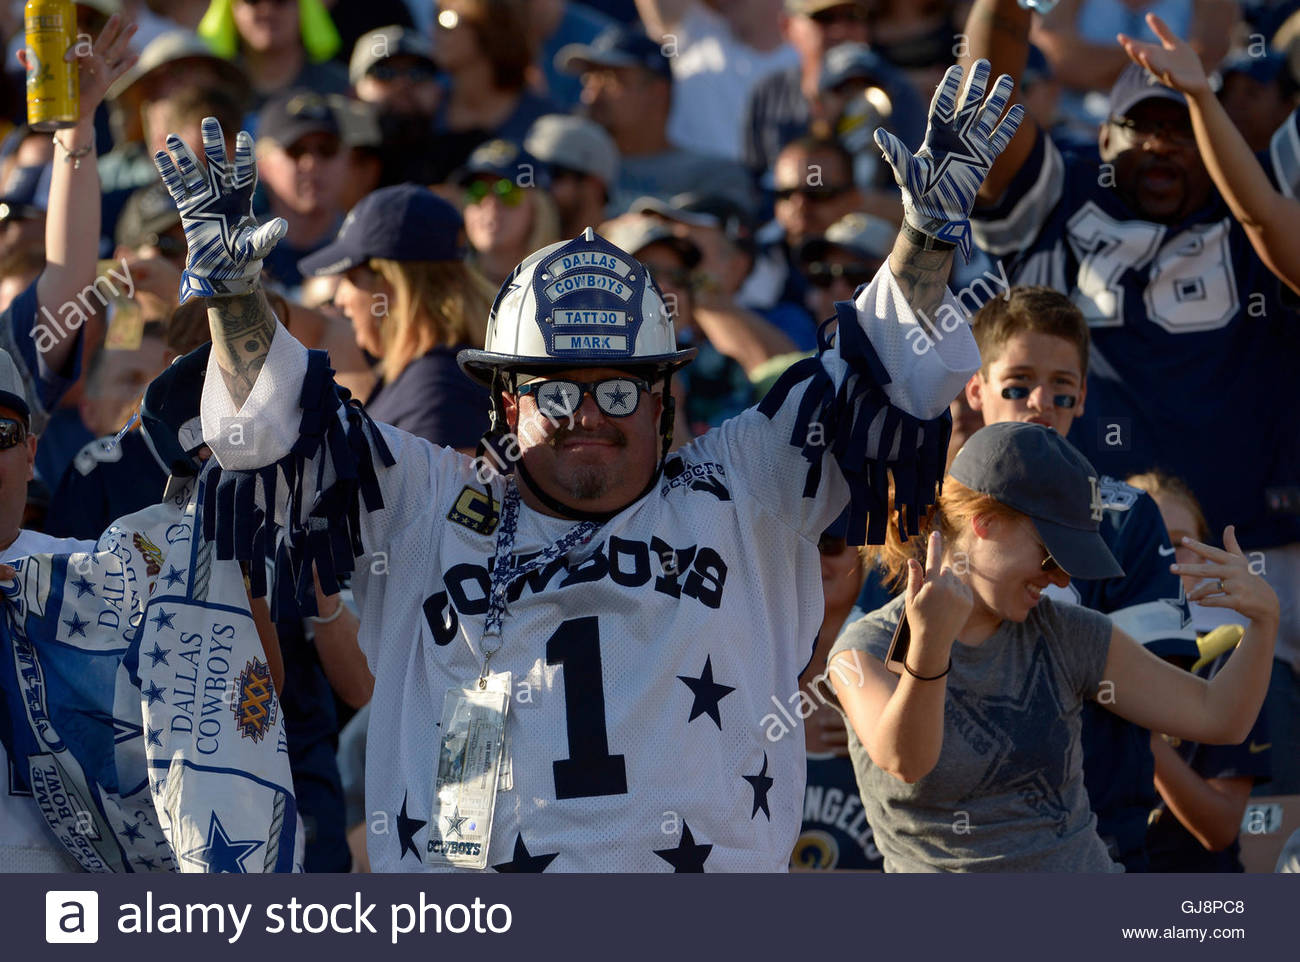 Los Angeles California Eeuu 13 Aug 2016 Un Dallas Cowboys